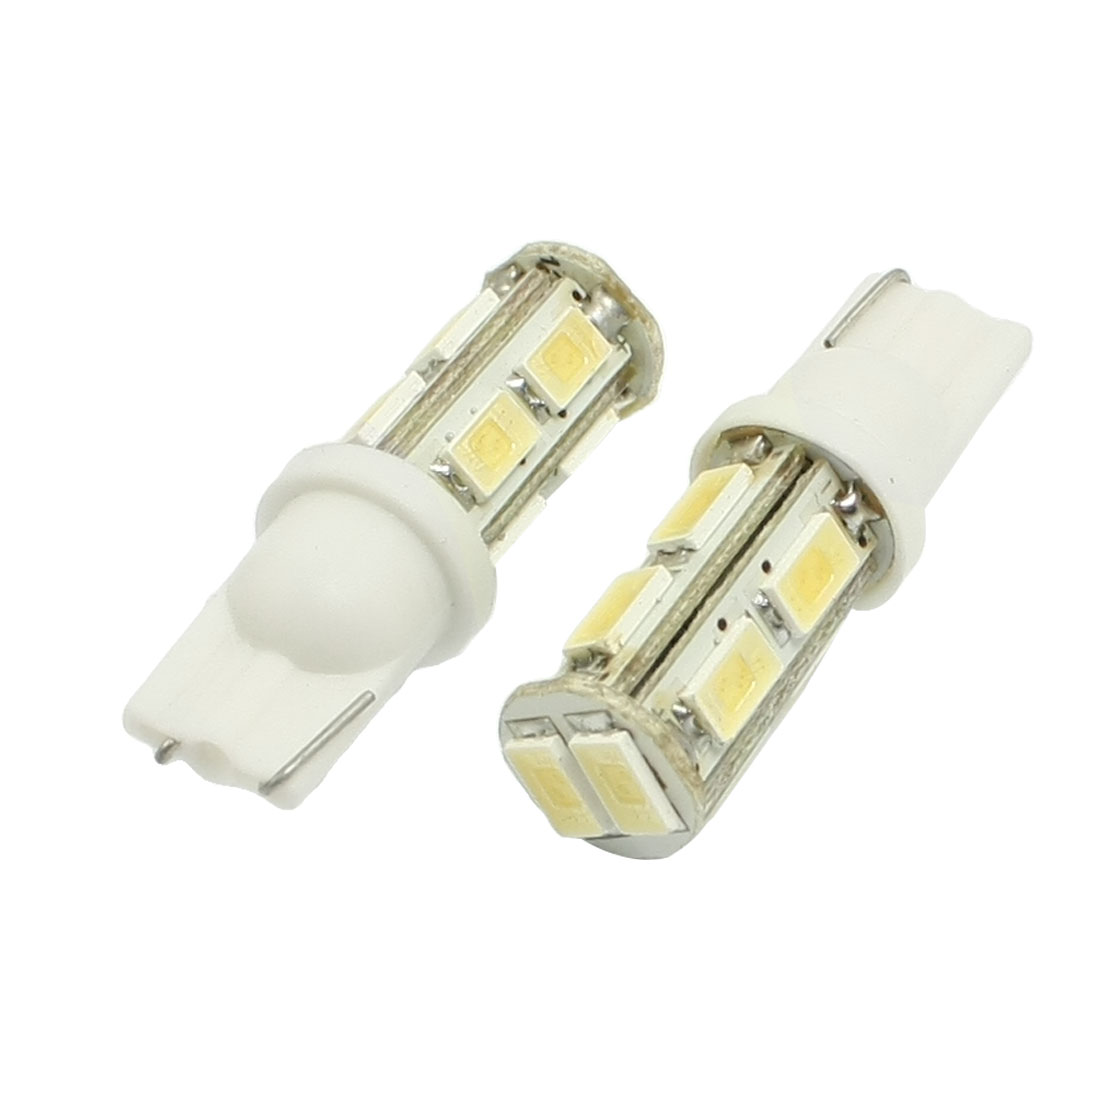 2 Pcs White 5630 SMD 10 LED Car Side Wedge Light Bulbs for Car Auto